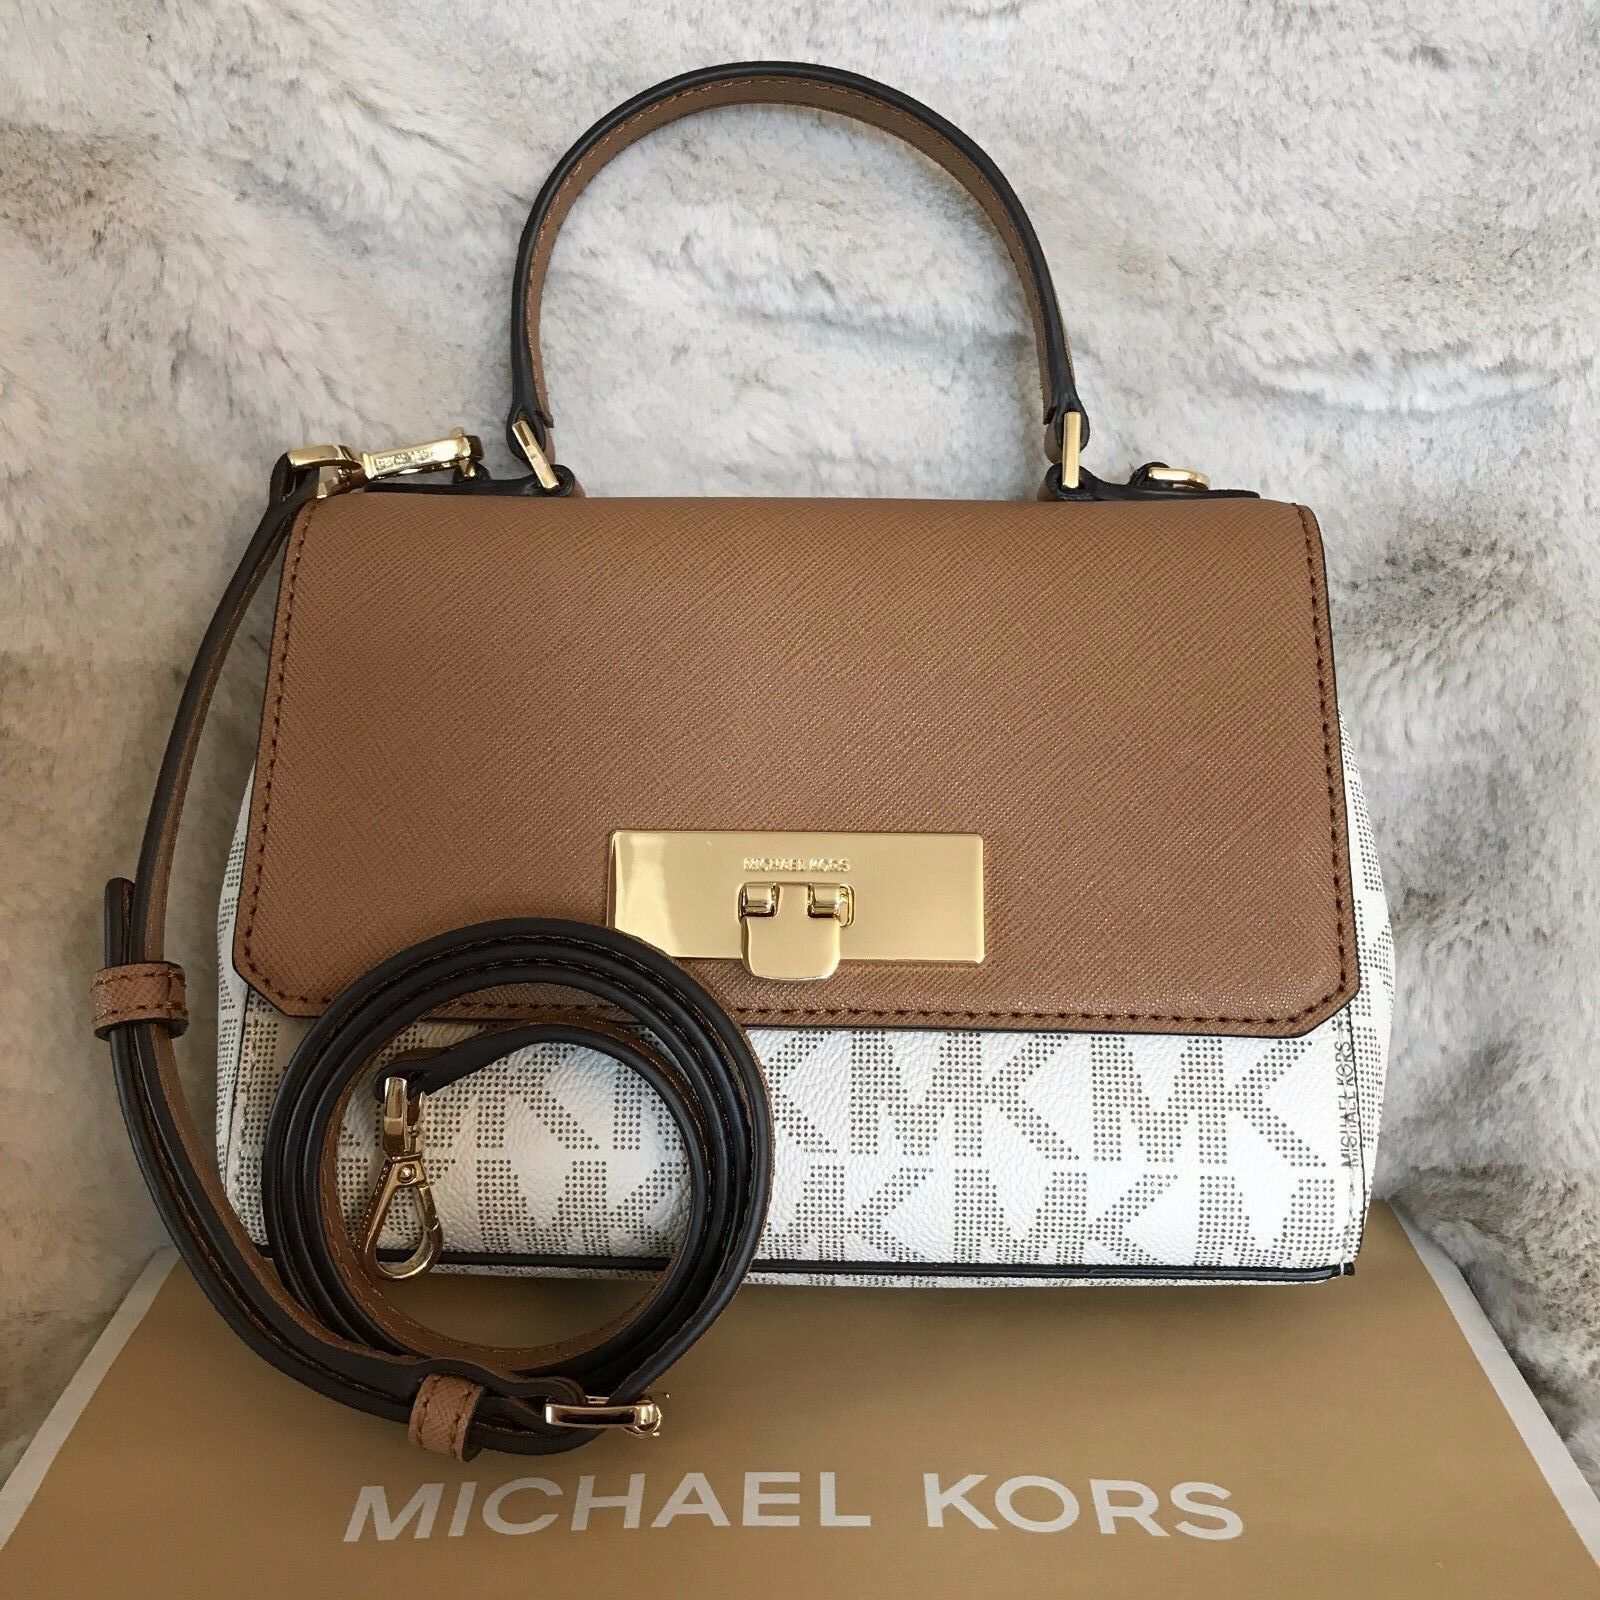 Michael Kors - NWT MICHAEL KORS SIGNATURE CALLIE FLAP XS CROSSBODY BAG IN VANILLA/ACORN